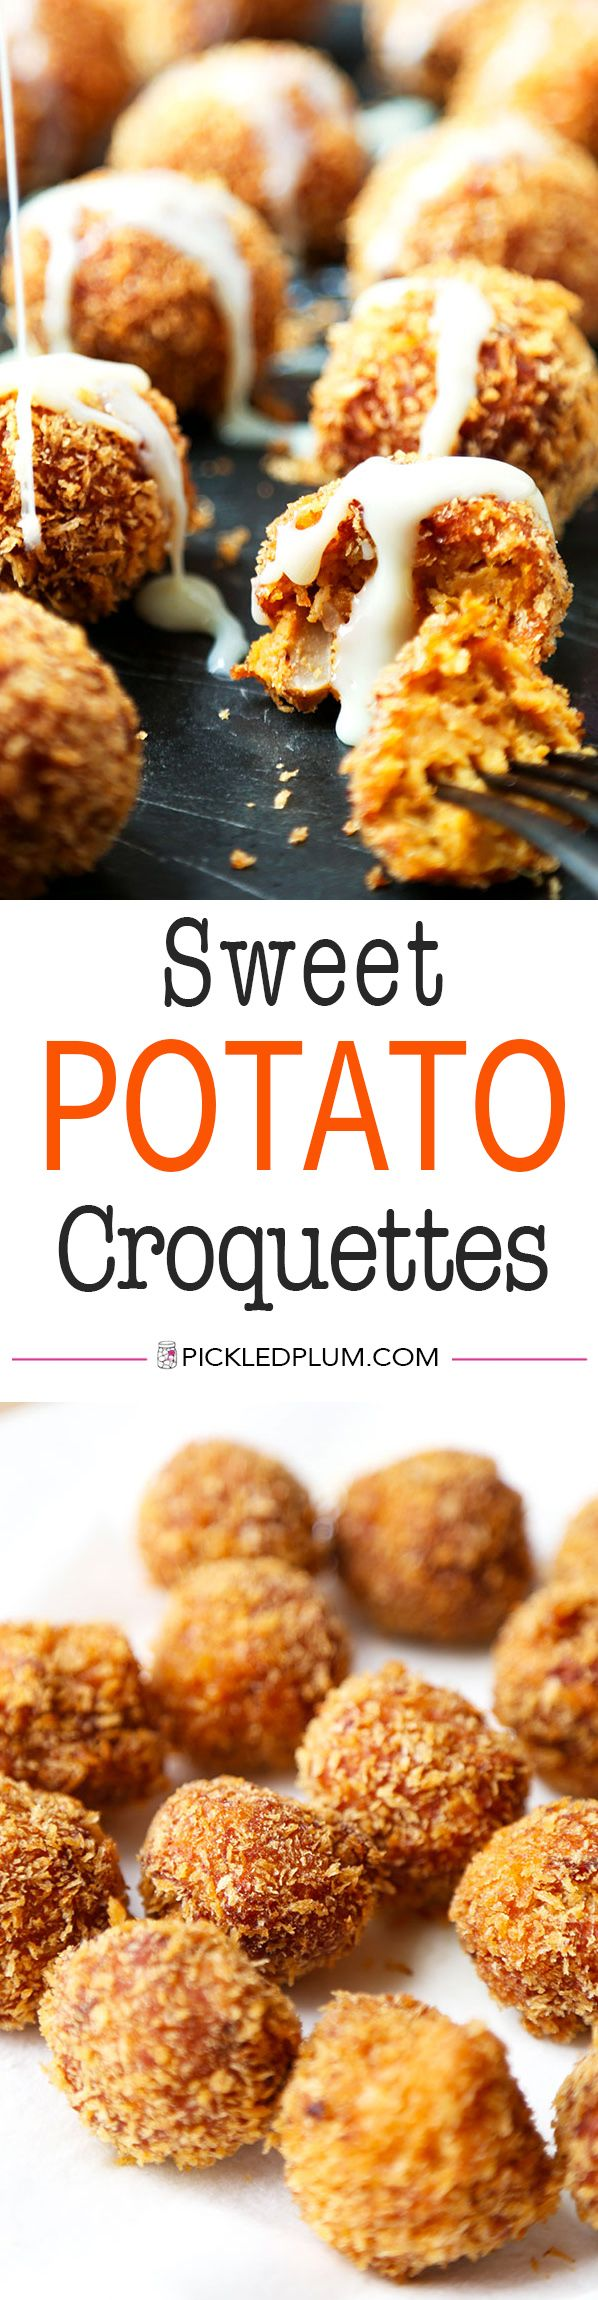 Sweet Potato Croquettes - Crispy on the outside with sweet, fluffy and ...